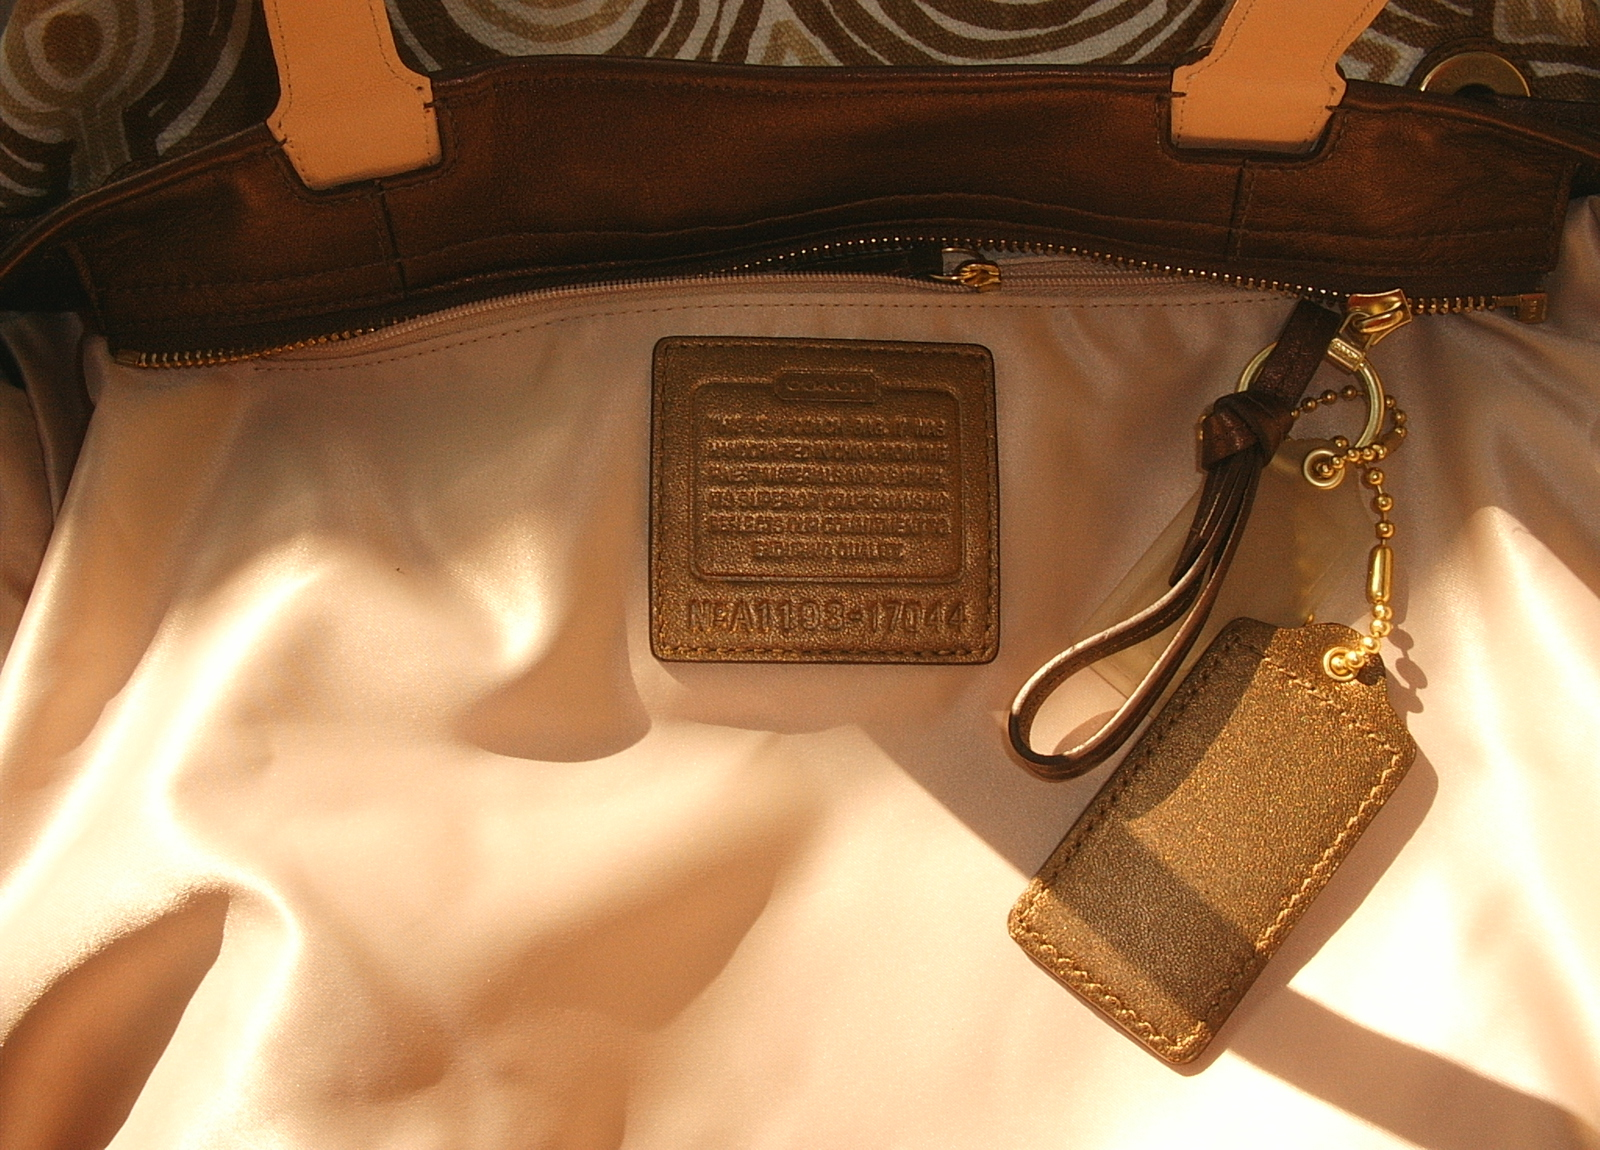 NWT COACH BROWN SWIRLTOTE 17044/WRITSLET F45531/COIN PURSE image 4